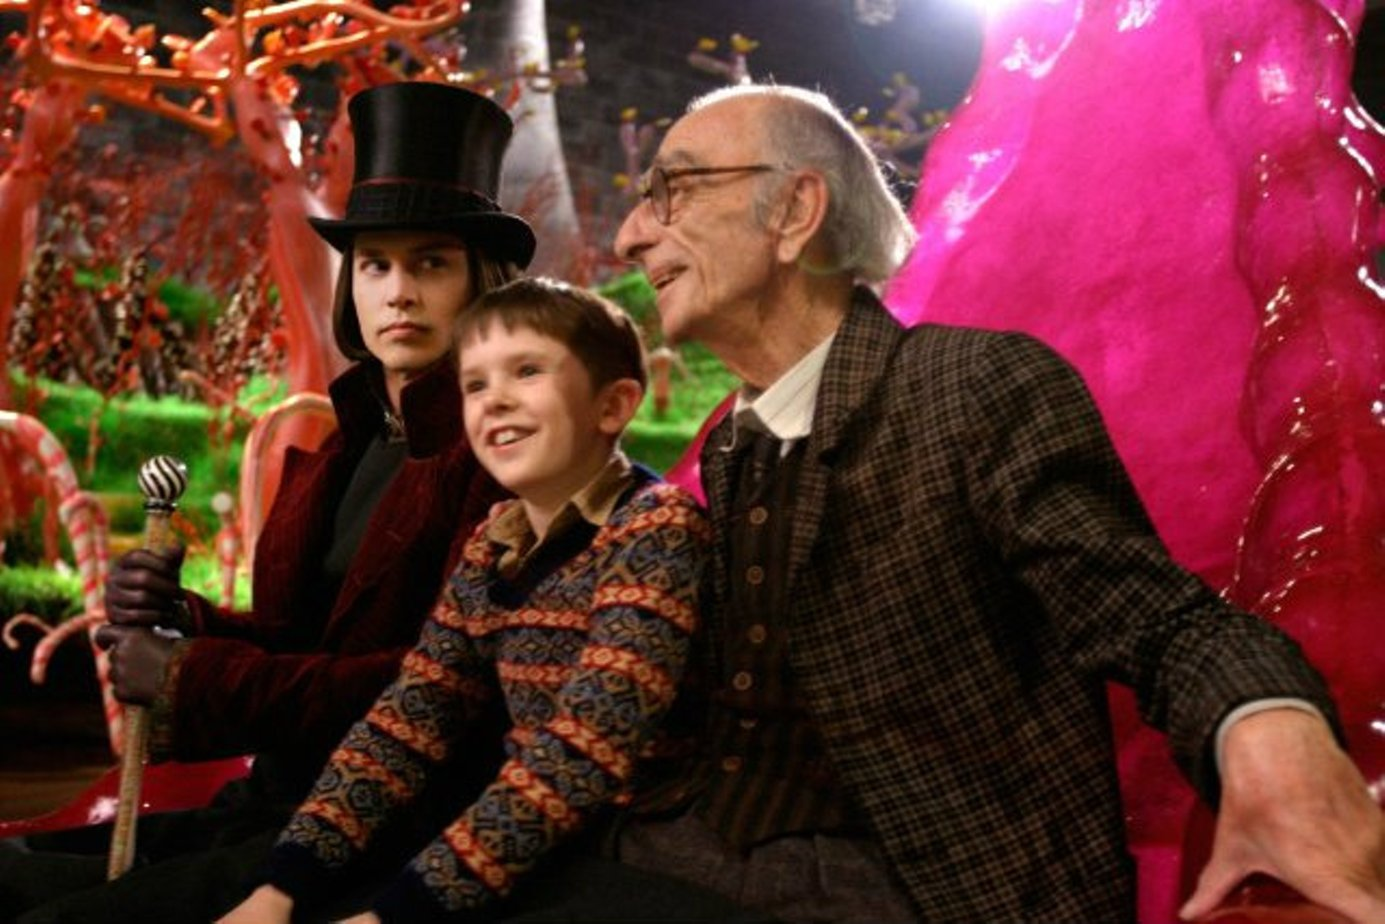 an analysis of charlie and the chocolate factory and alice in wonderland two movies by tim burton In a surprise appearance at comic-con in july, during tim burton's presentation of his upcoming alice in wonderland adaptation, star johnny depp made a surprise appearance onstage the crowd.